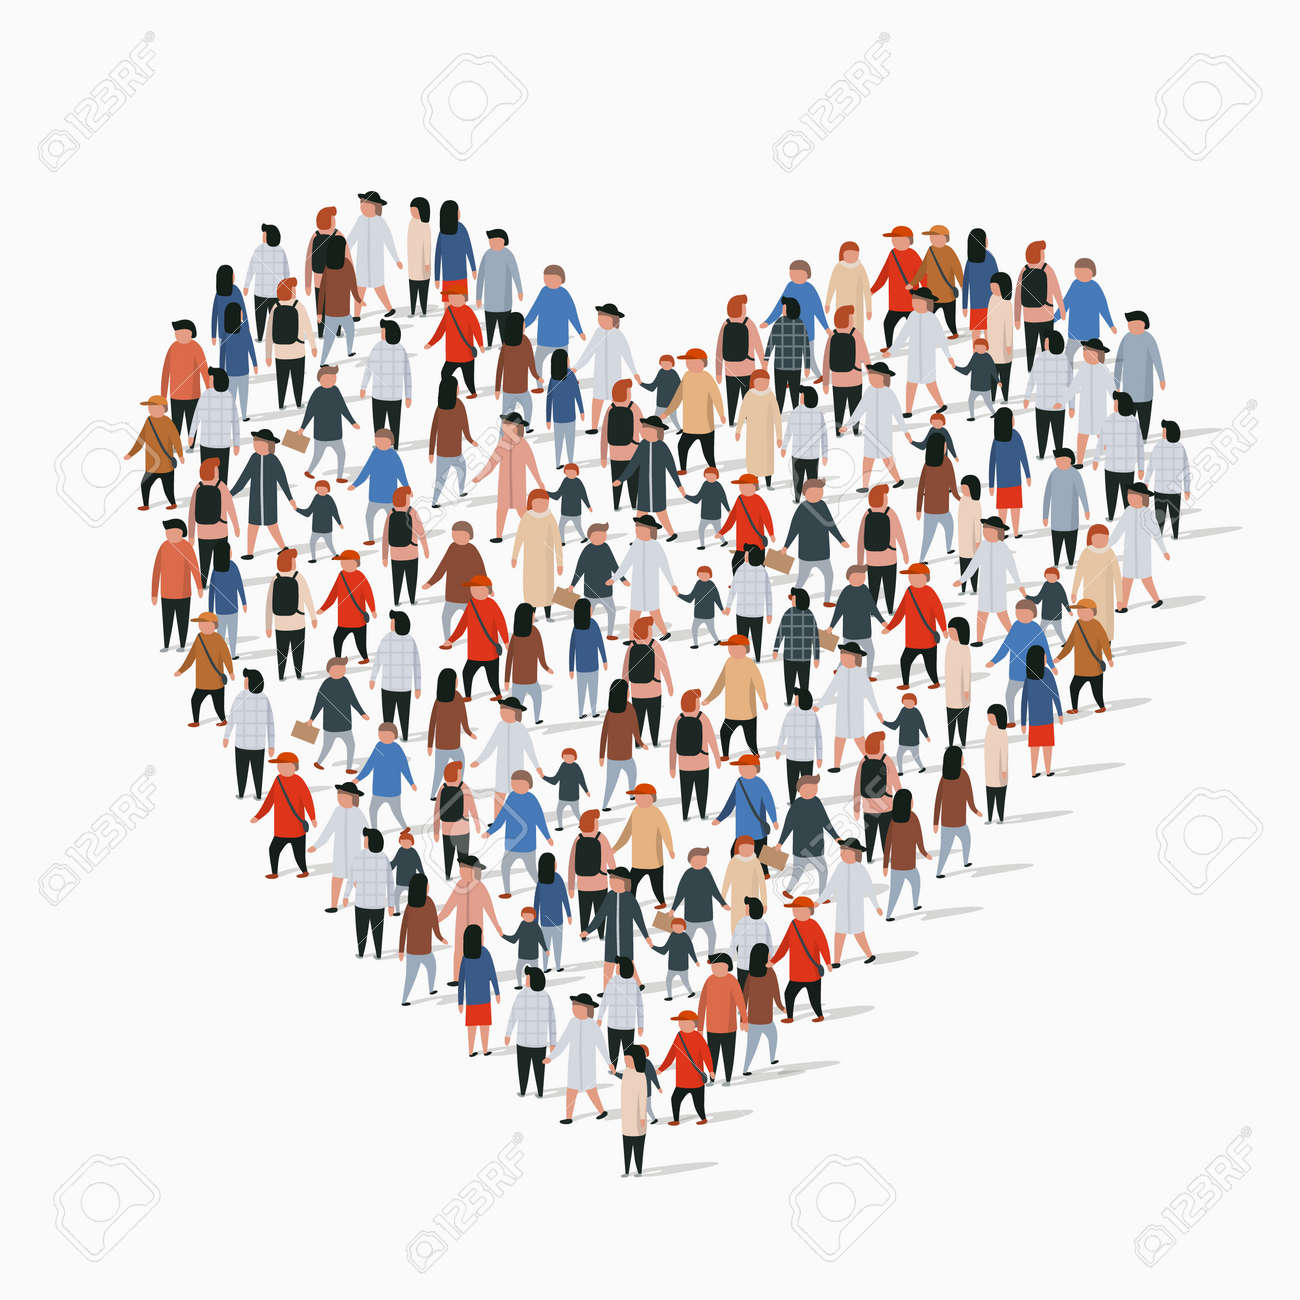 Large group of people in the heart sign shape. Vector illustration - 128491341